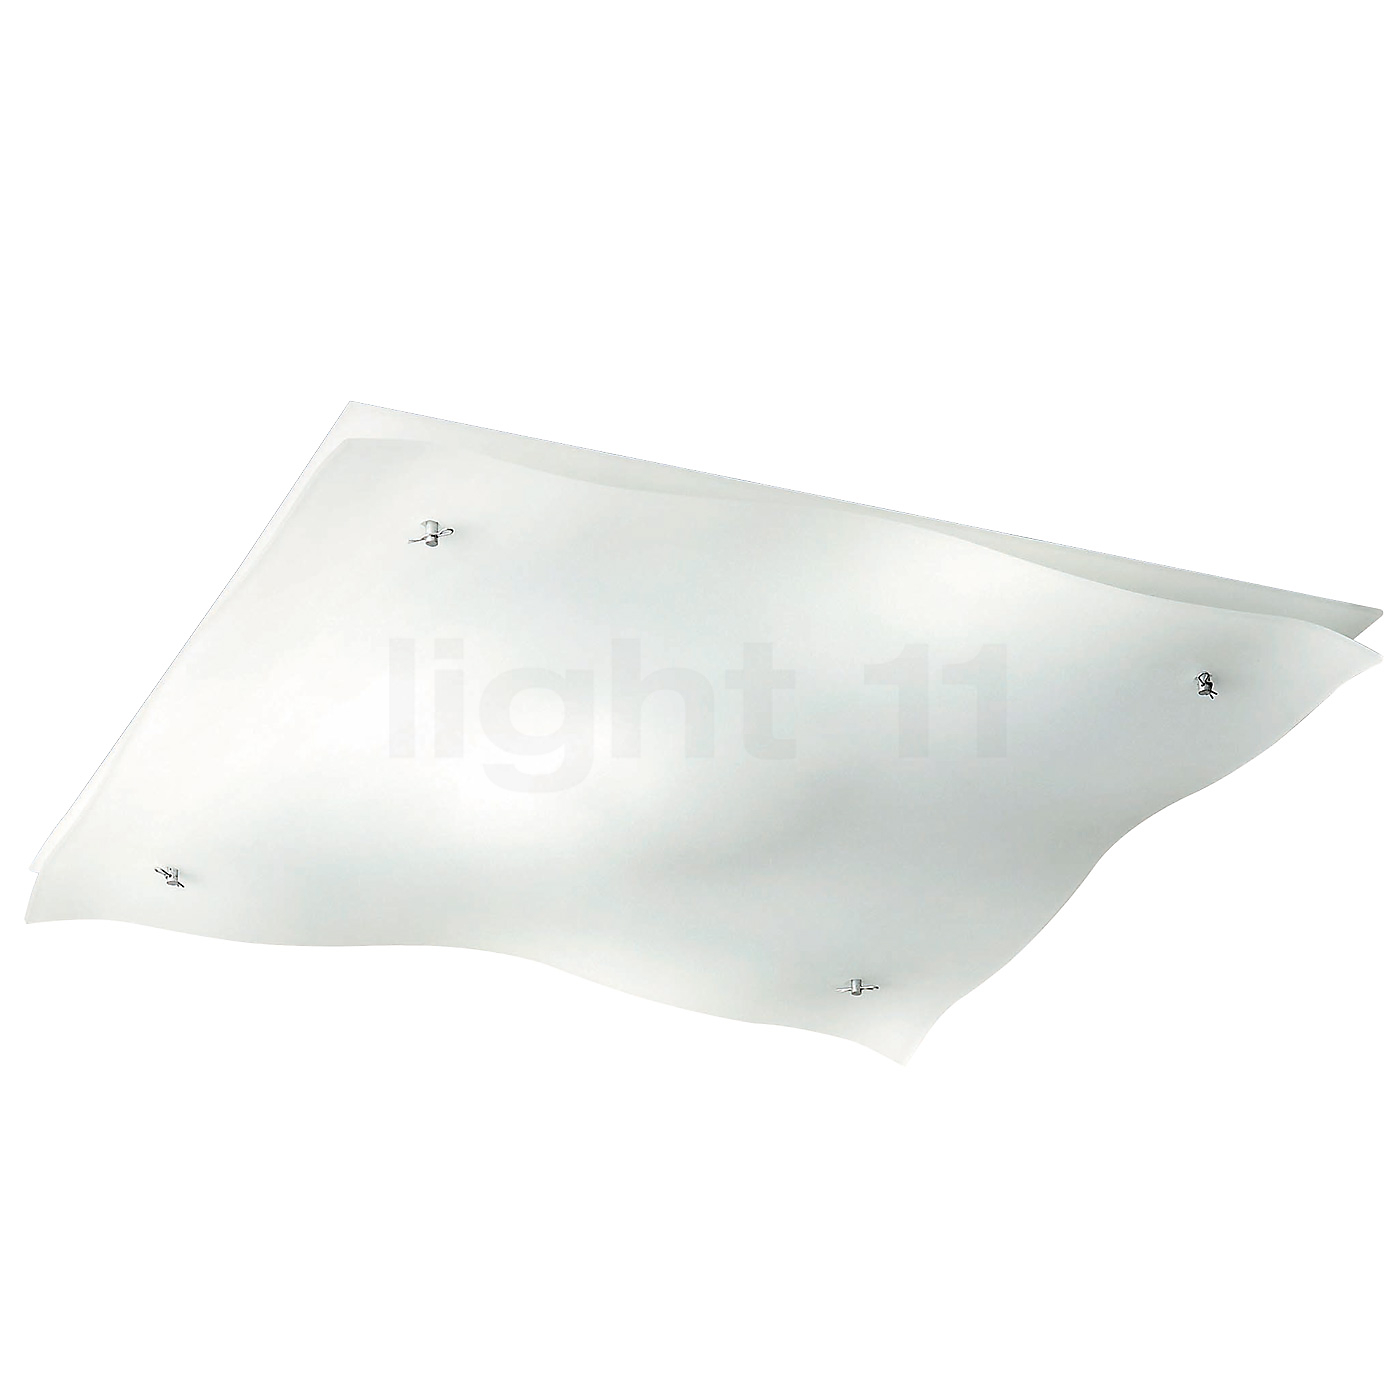 philips ecomoods ceiling light photo - 5